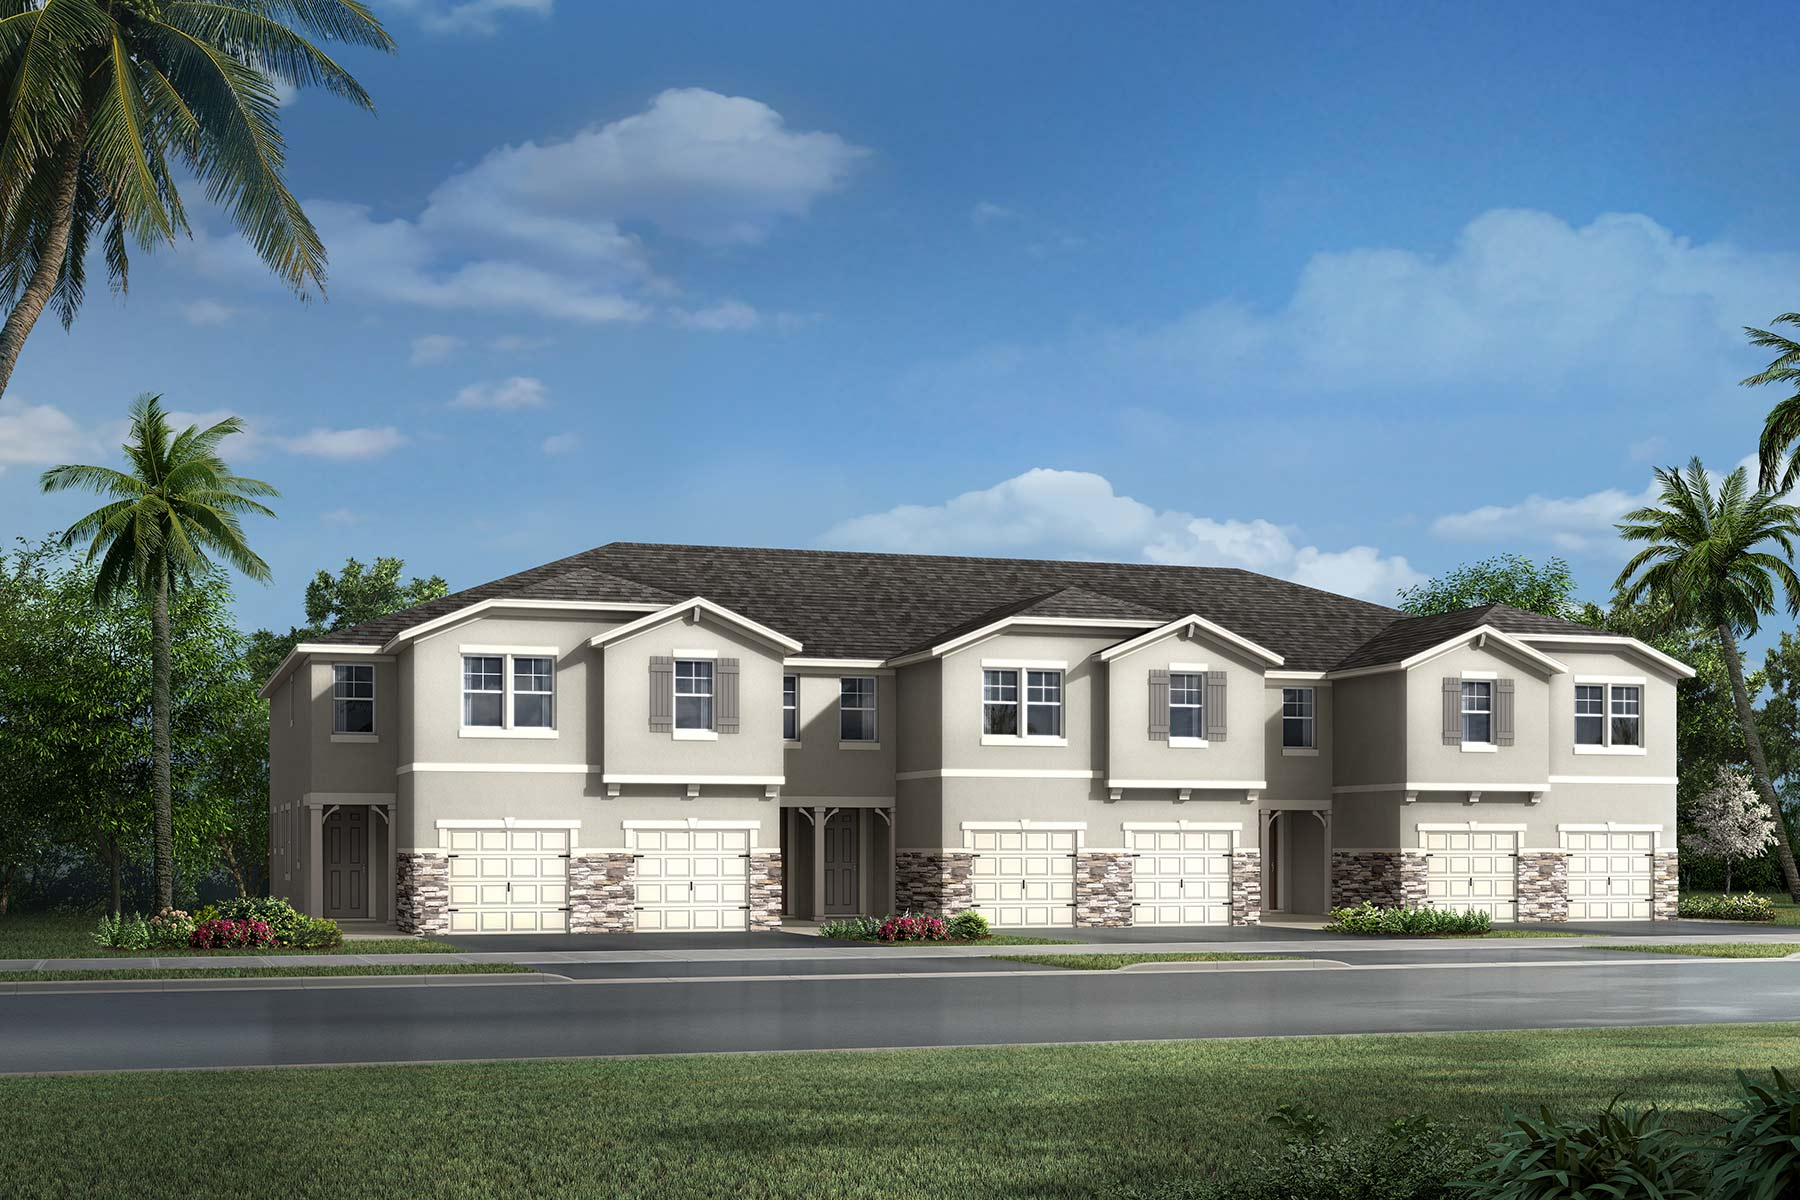 Marianna Plan TownHomes at Avea Pointe in Lutz Florida by Mattamy Homes